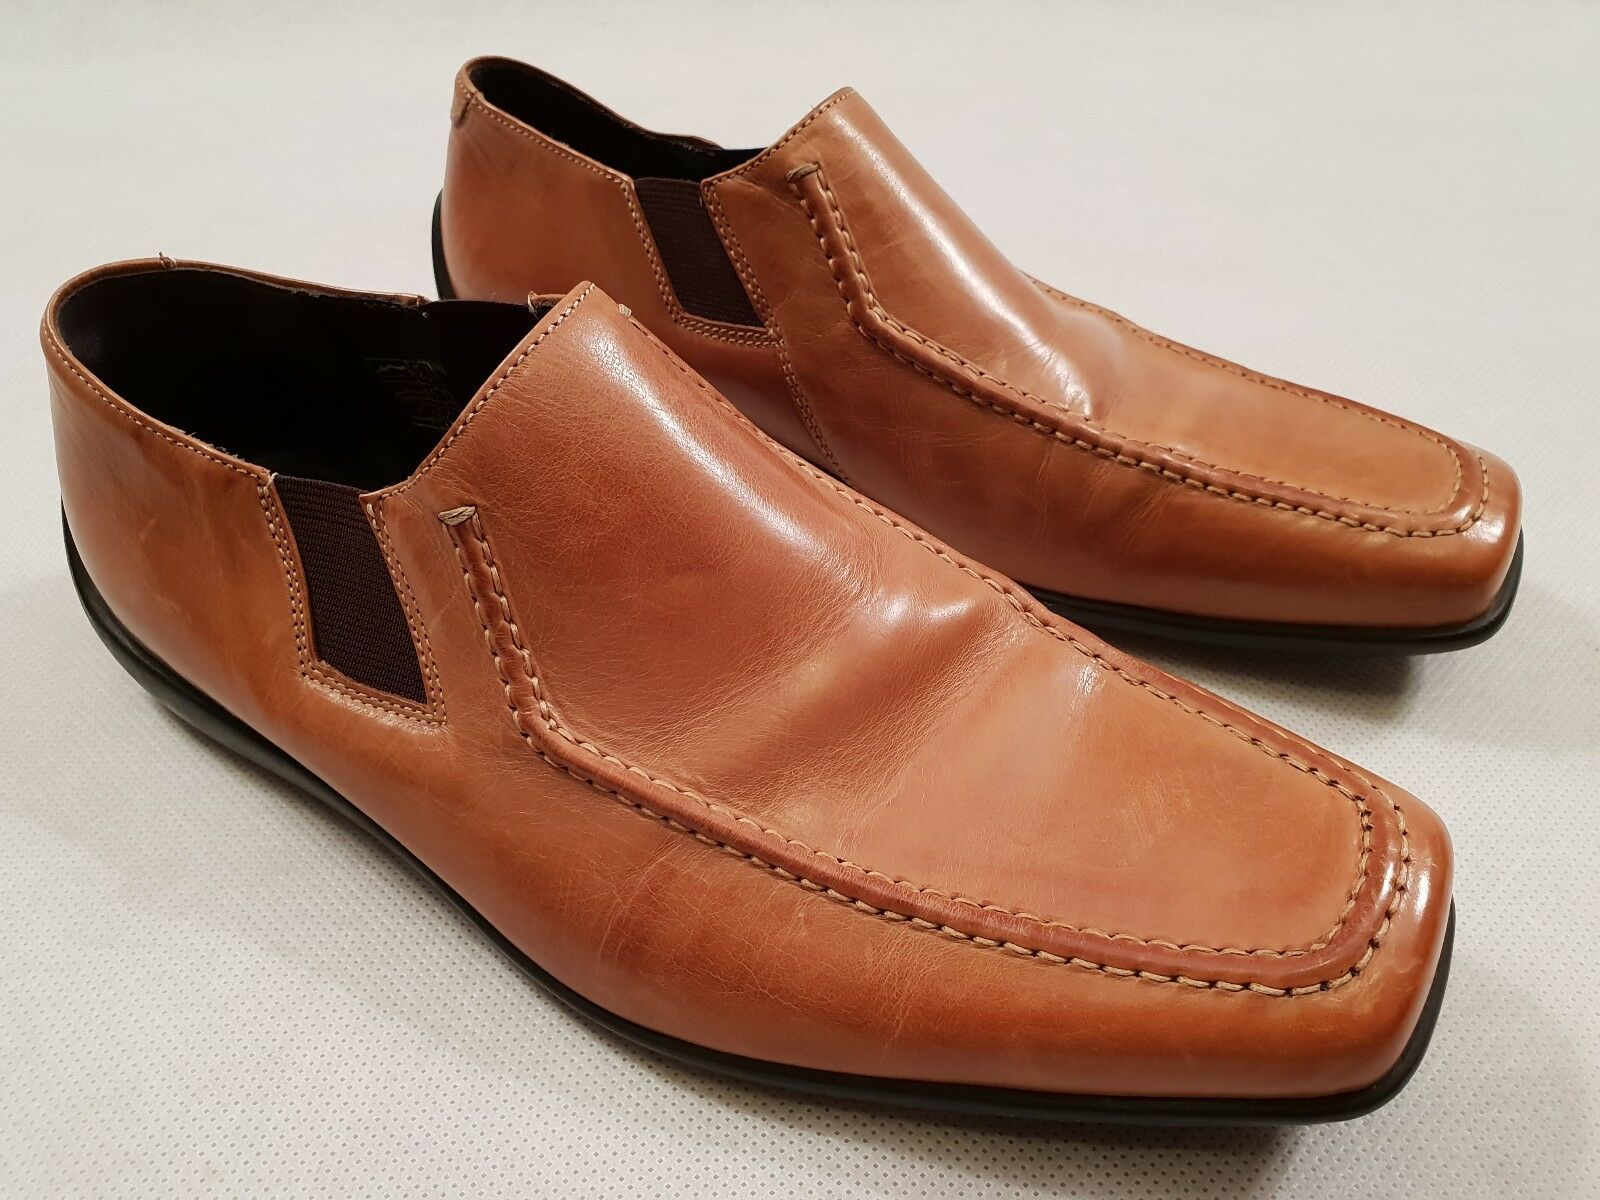 Paul Smith Tan Leather Loafer shoes Slip on shoes EU Size 41 UK Size 7 RRP